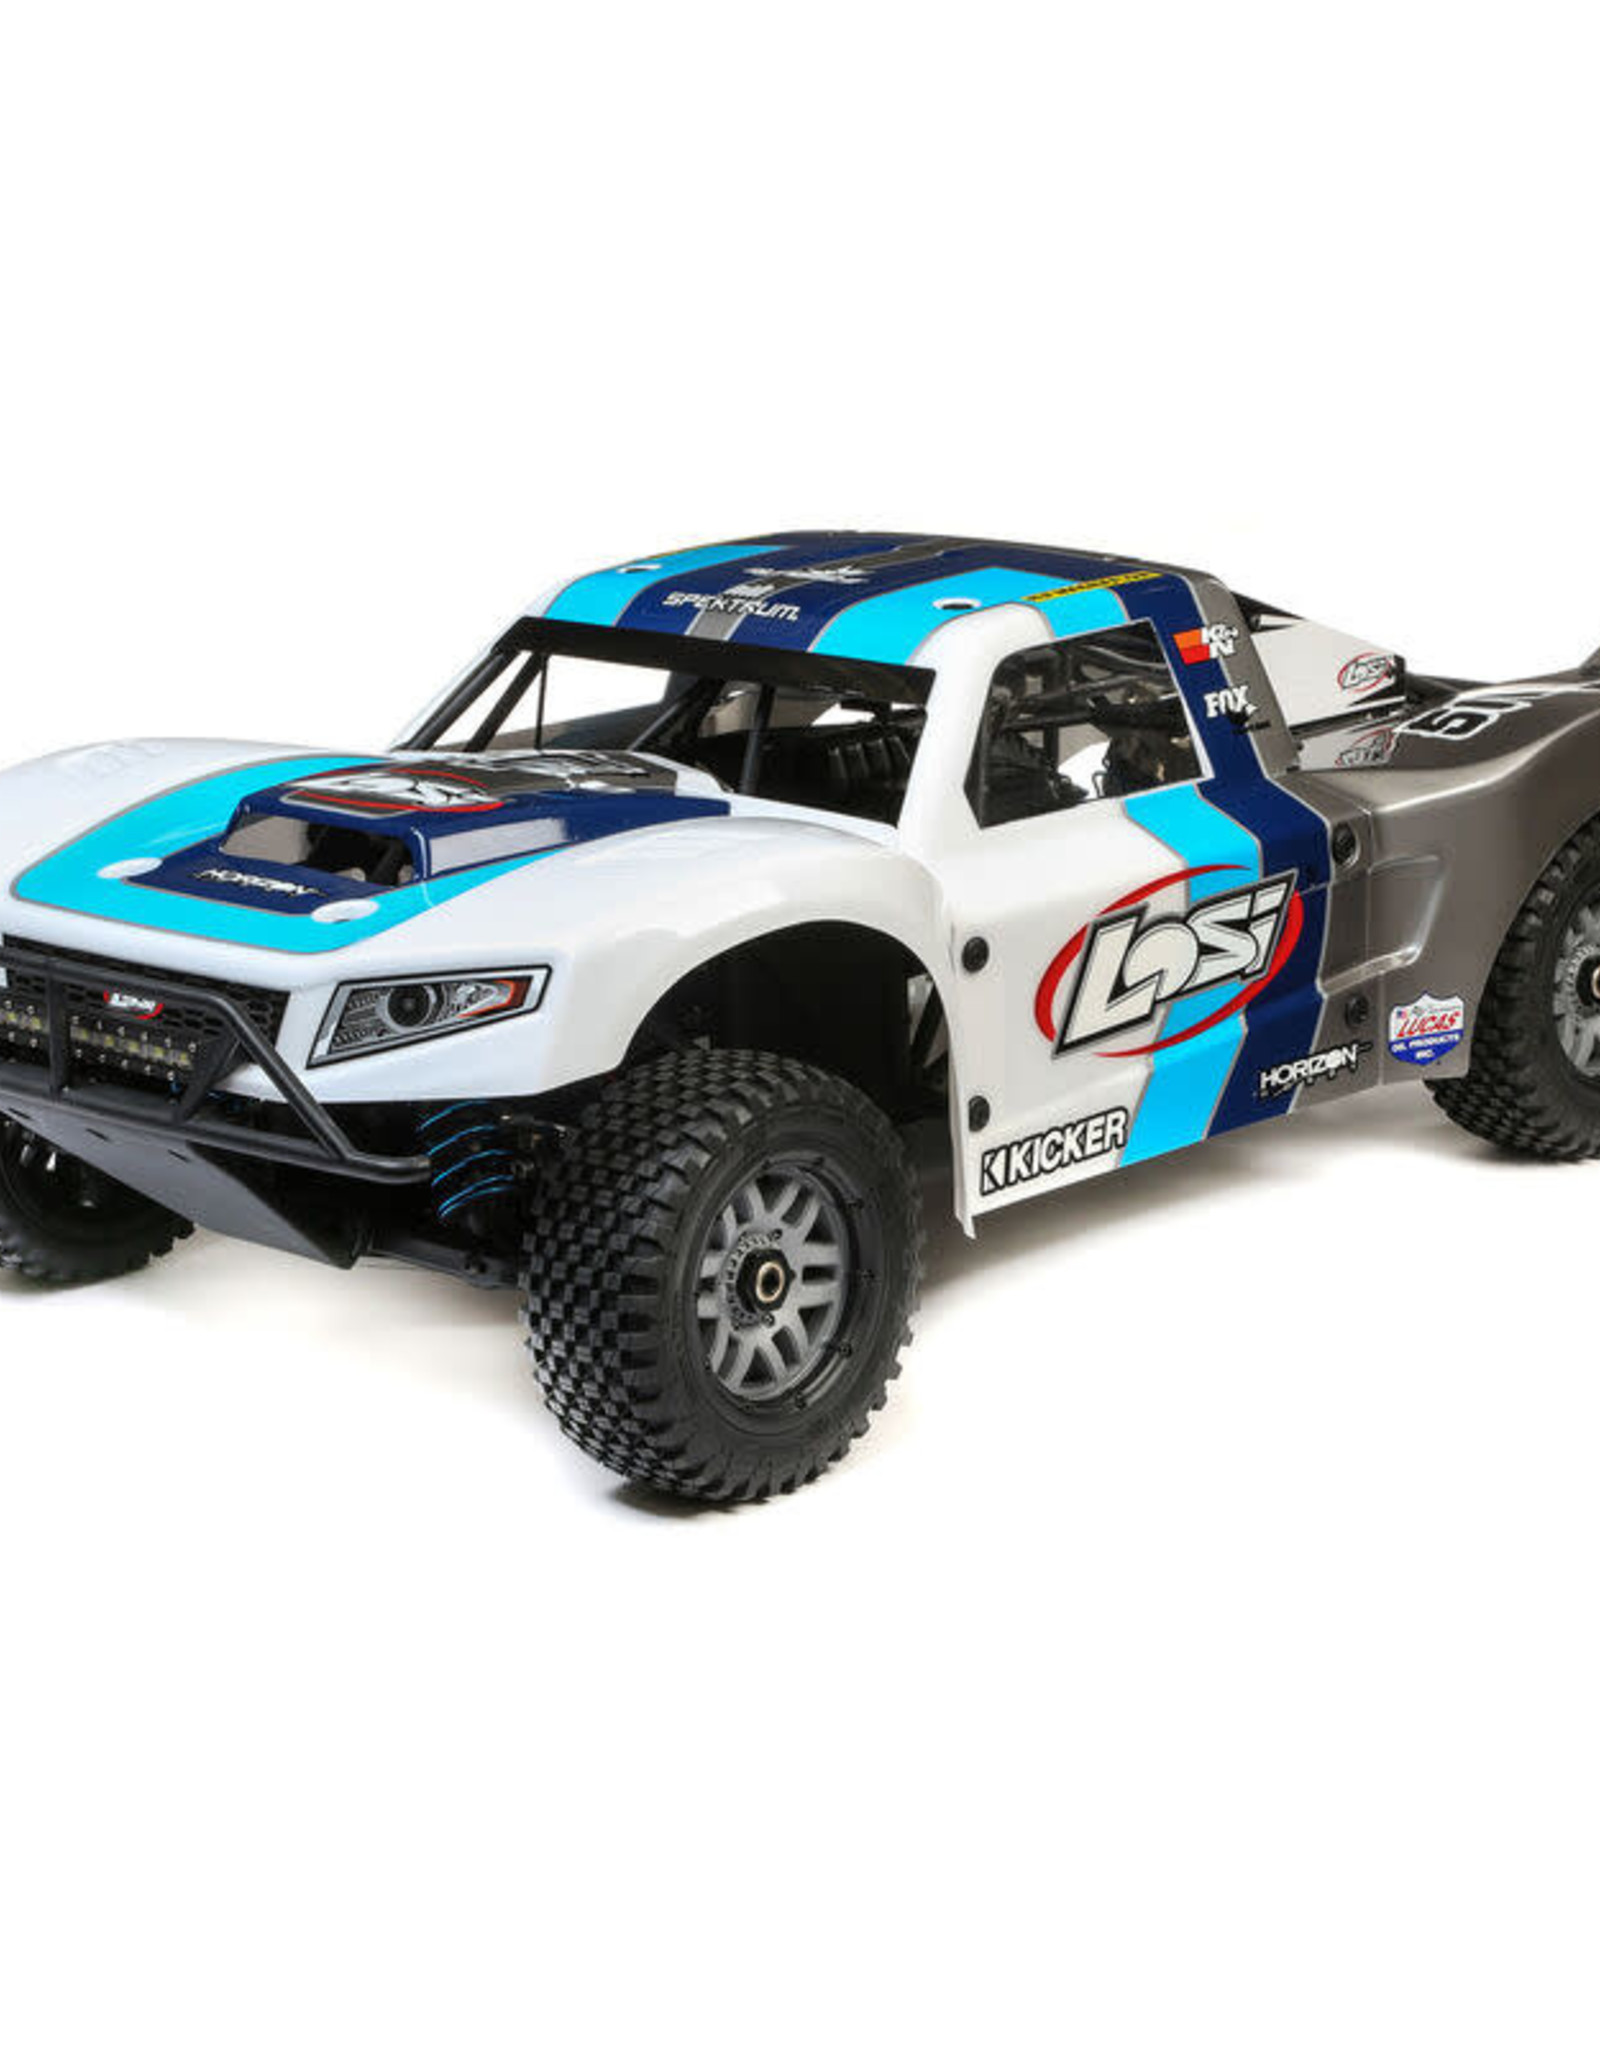 Losi LOS05014T1 1/5 5IVE-T 2.0 4WD Short Course Truck Gas BND, Grey/Blue/White